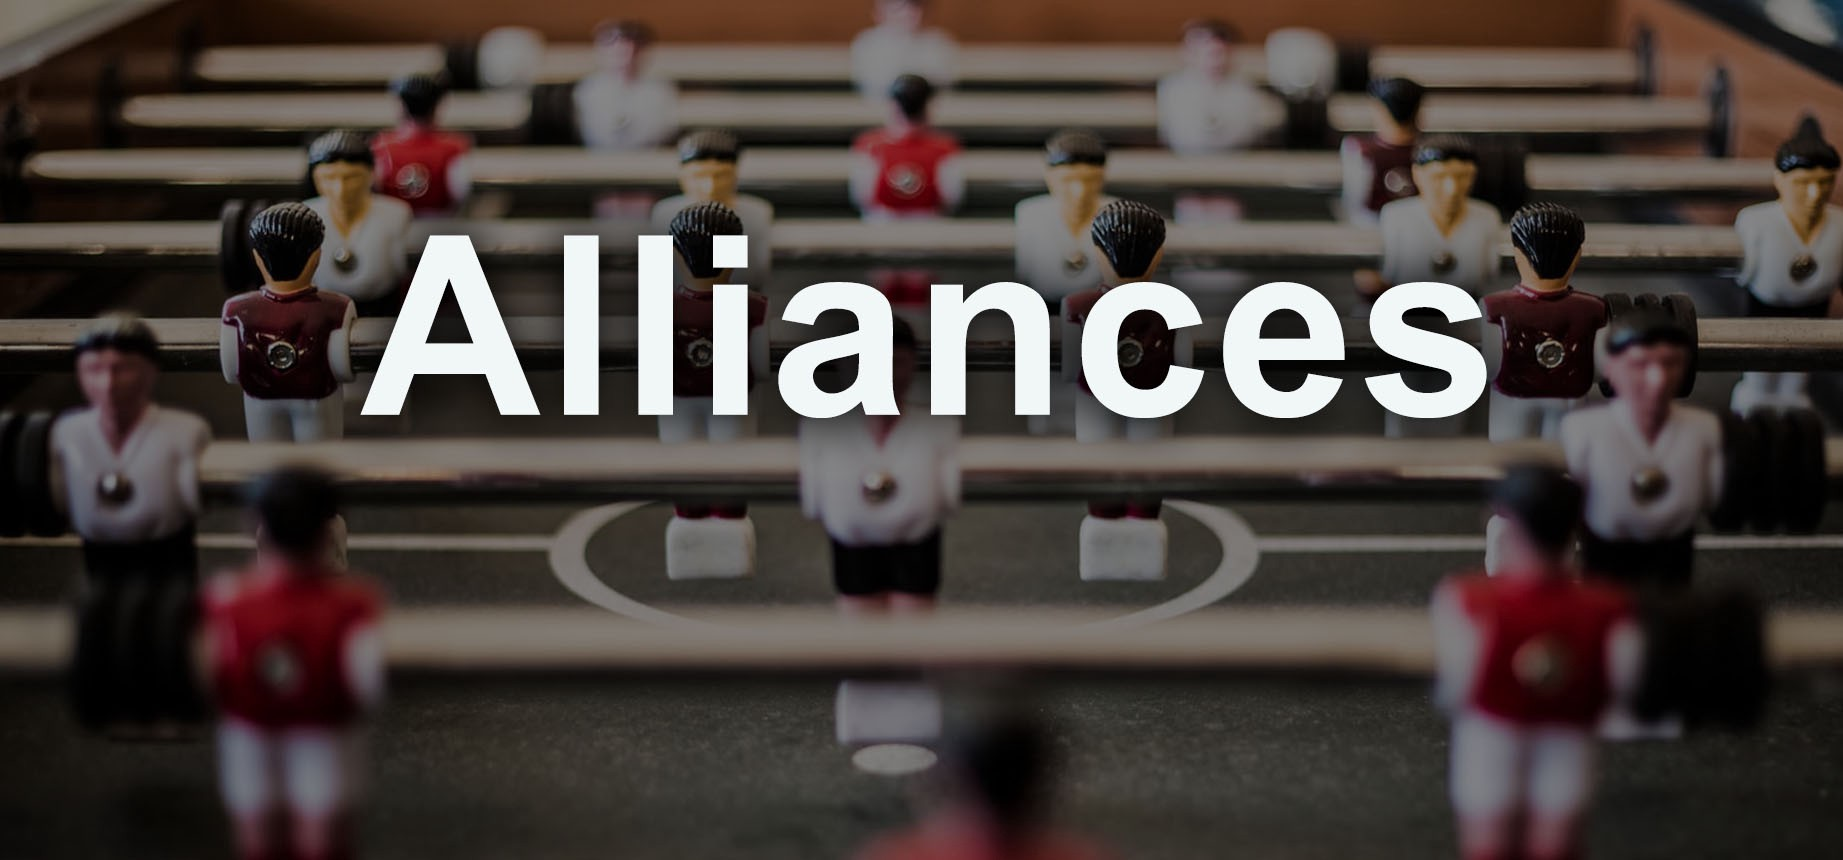 Long-awaited Functionality for the Alliances Has Been Launched